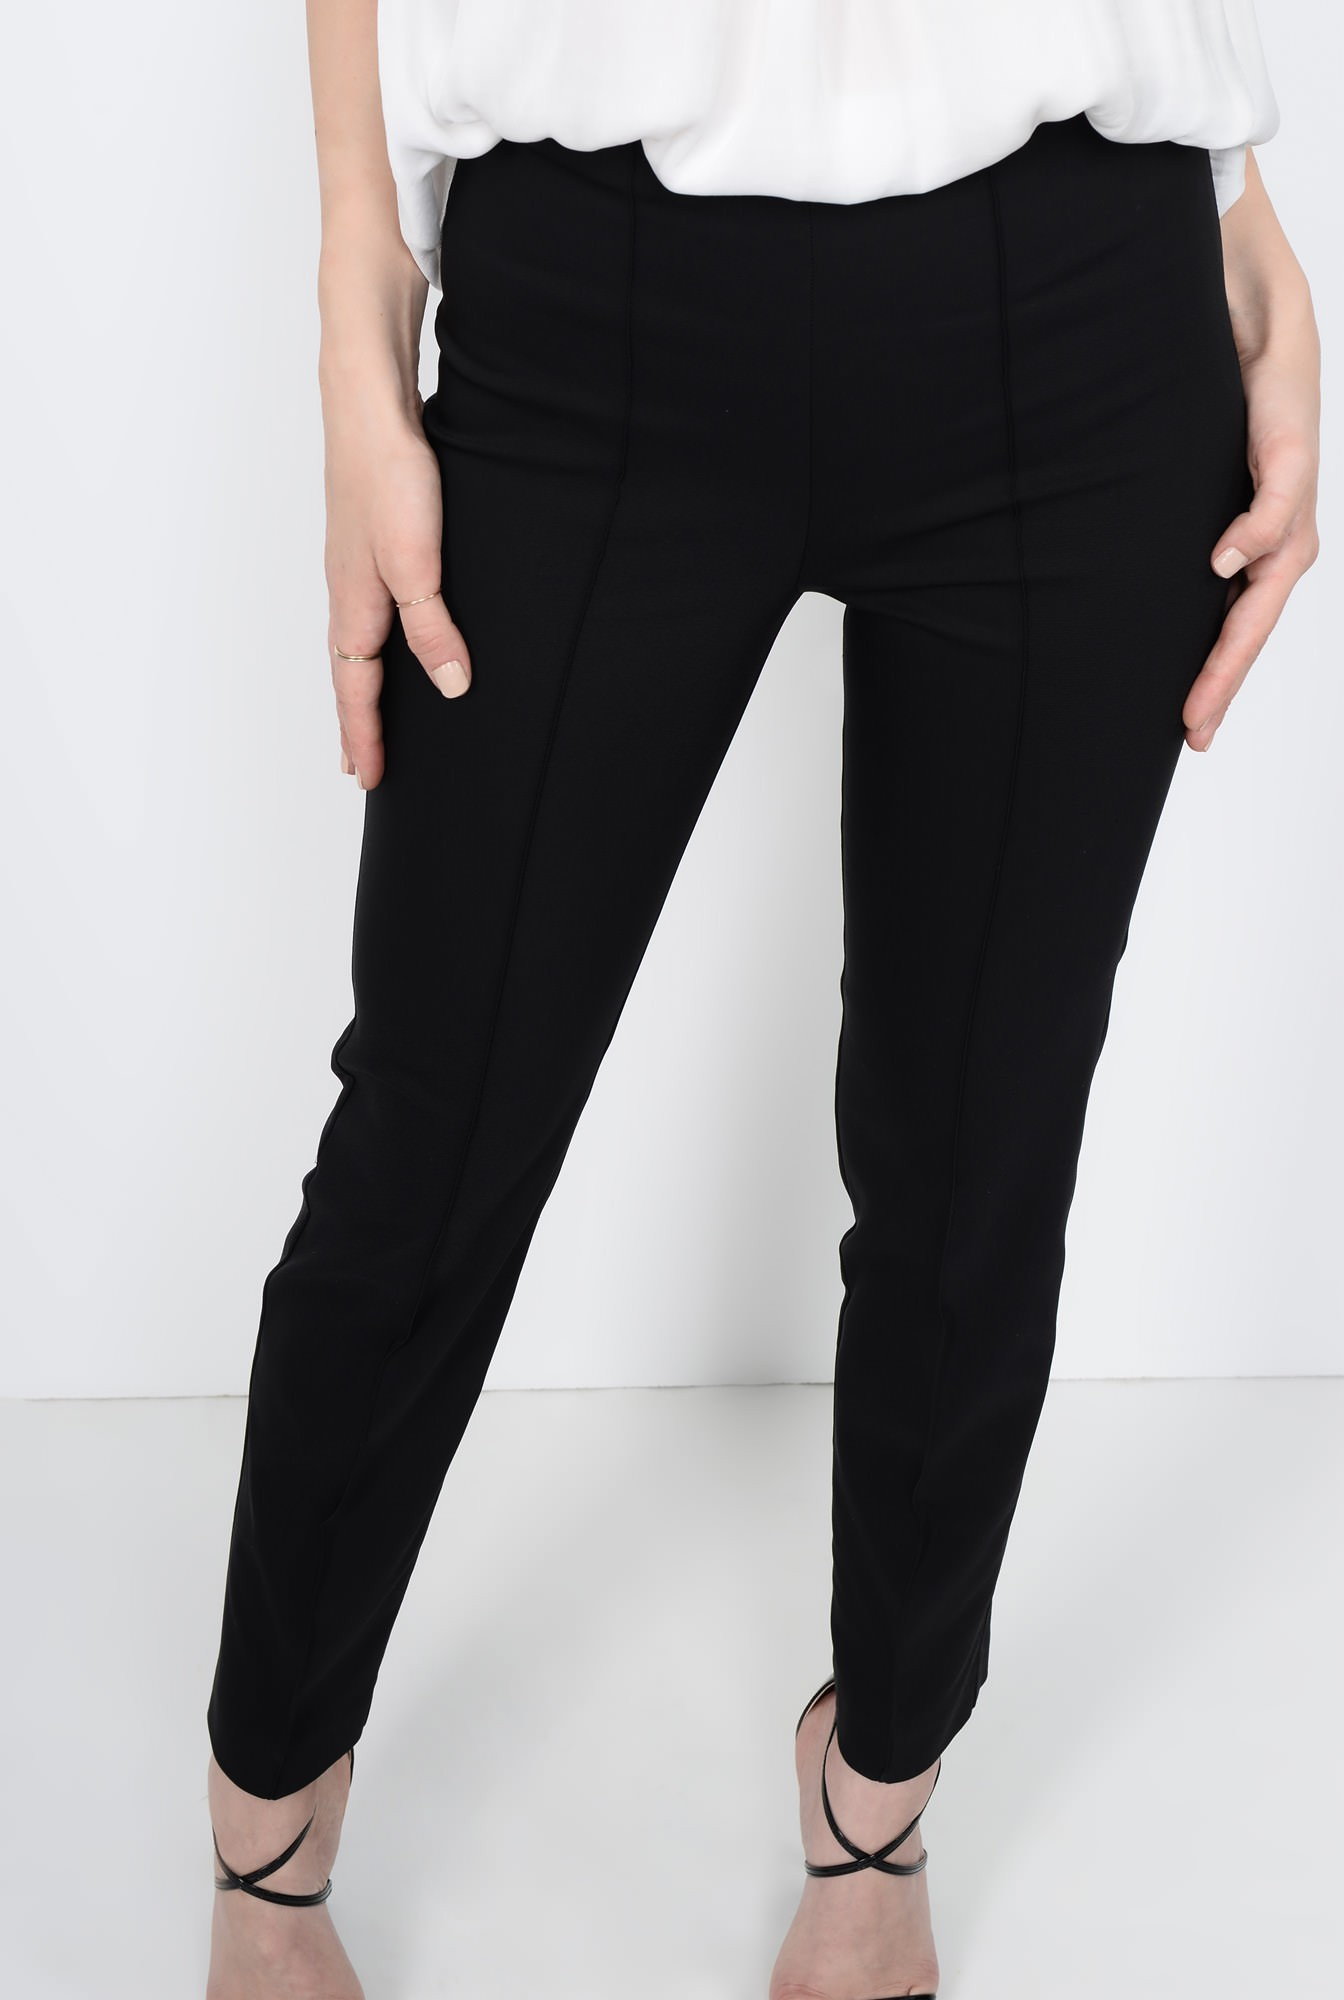 2 - PANTALON OFFICE CONIC PT 105-NEGRU